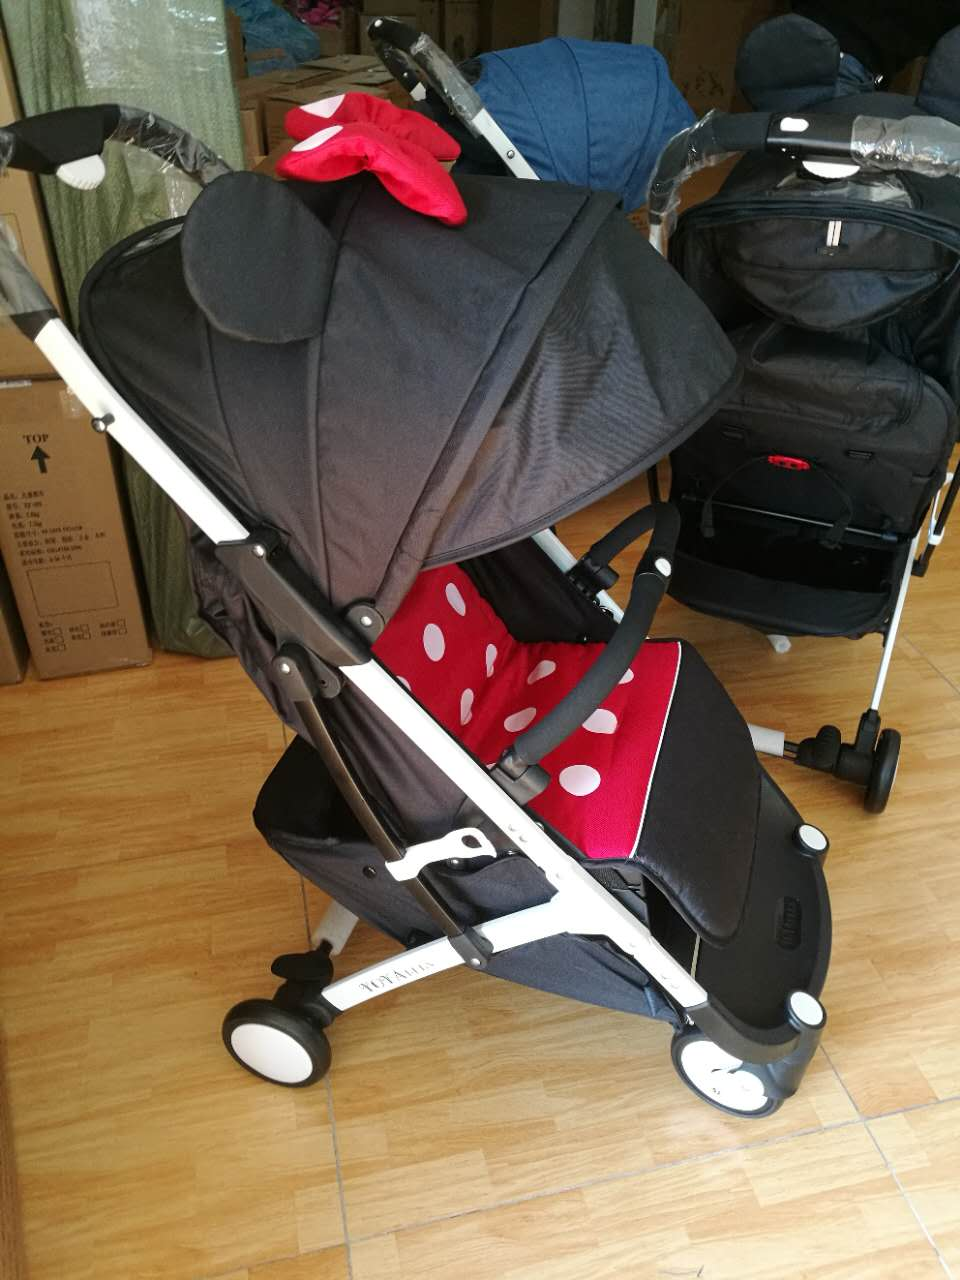 European Luxury Folding Baby Umbrella Stroller original Carriage Baby Pram Style Travel Baby Stroller Wagon Portable Lightweight bair folding baby umbrella stroller baby car carriage buggy style travel stroller wagon portable lightweight